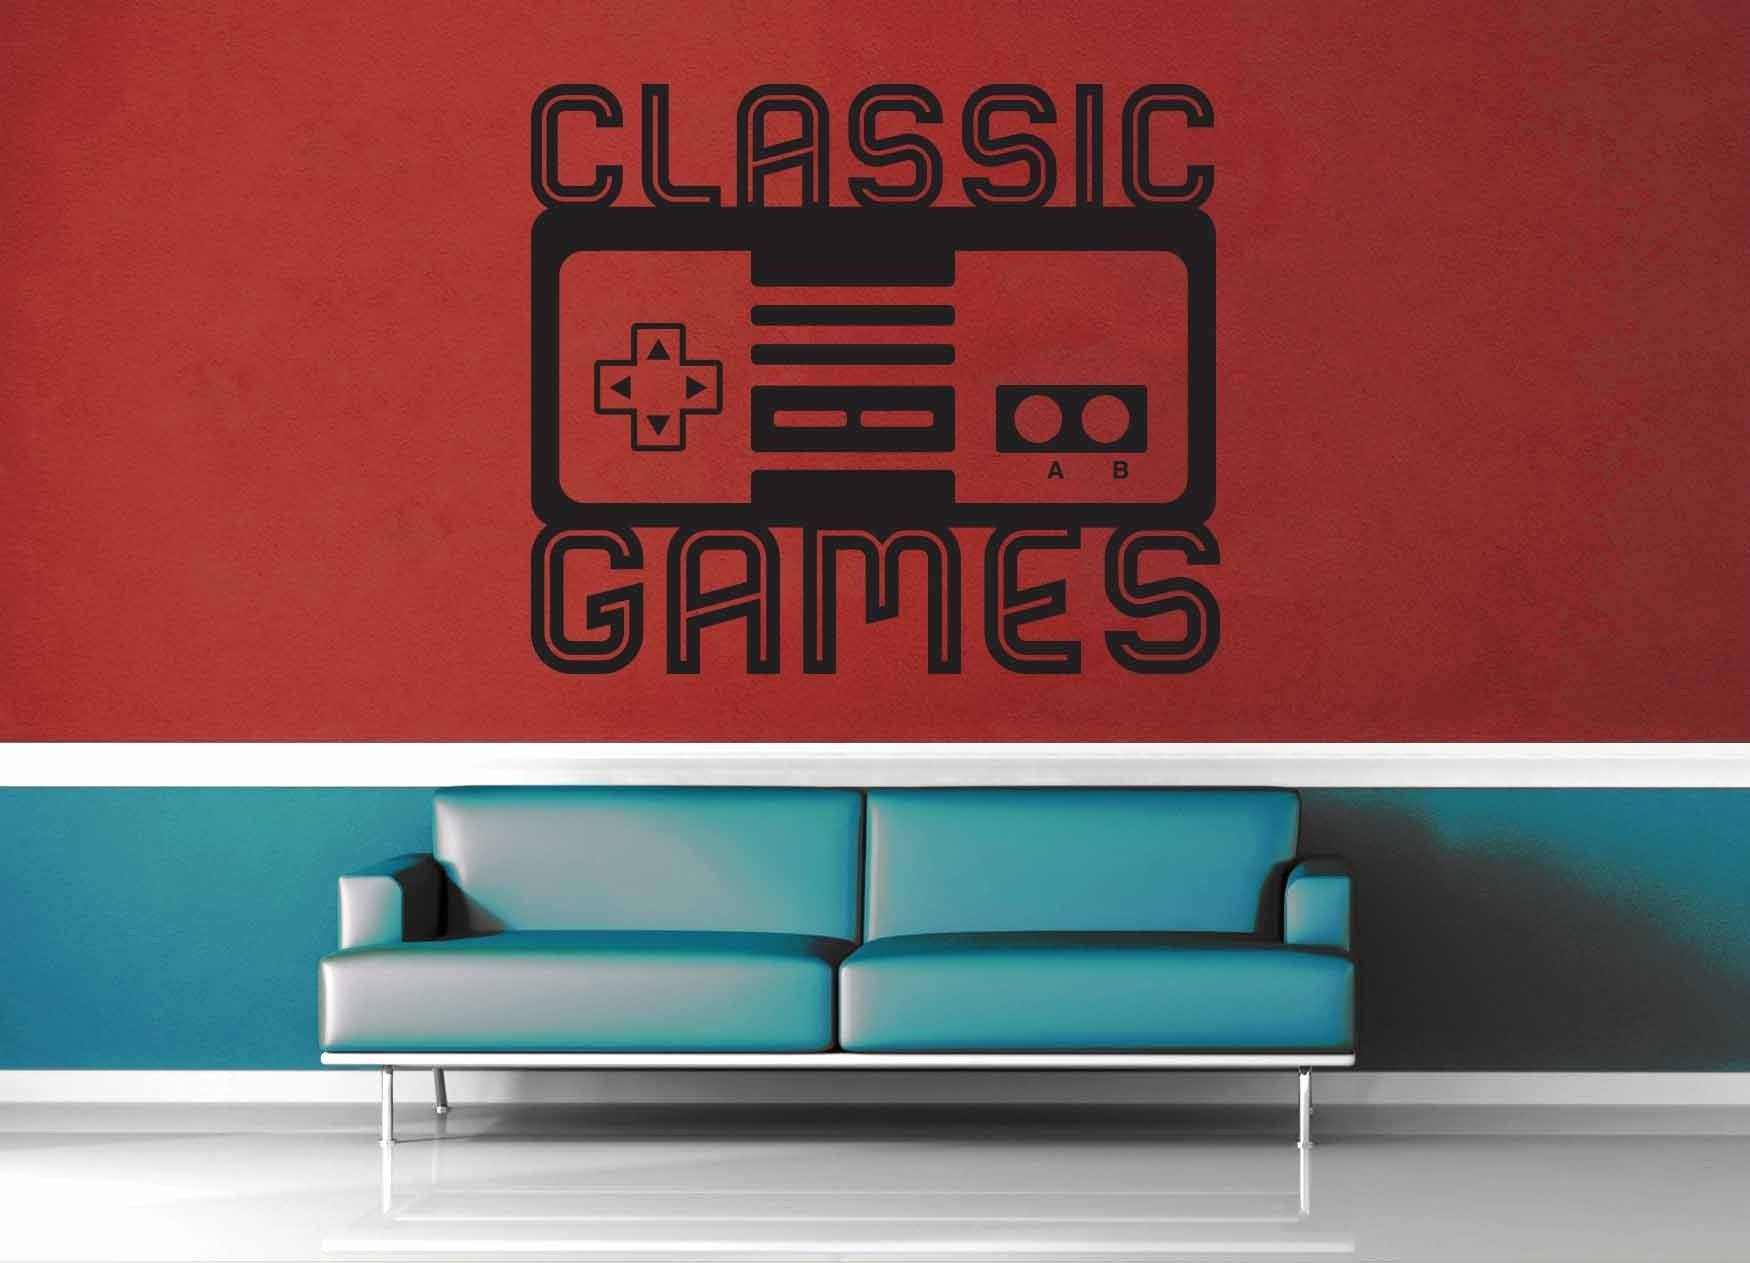 Classic Games - Gamer Décor - Wall Decal